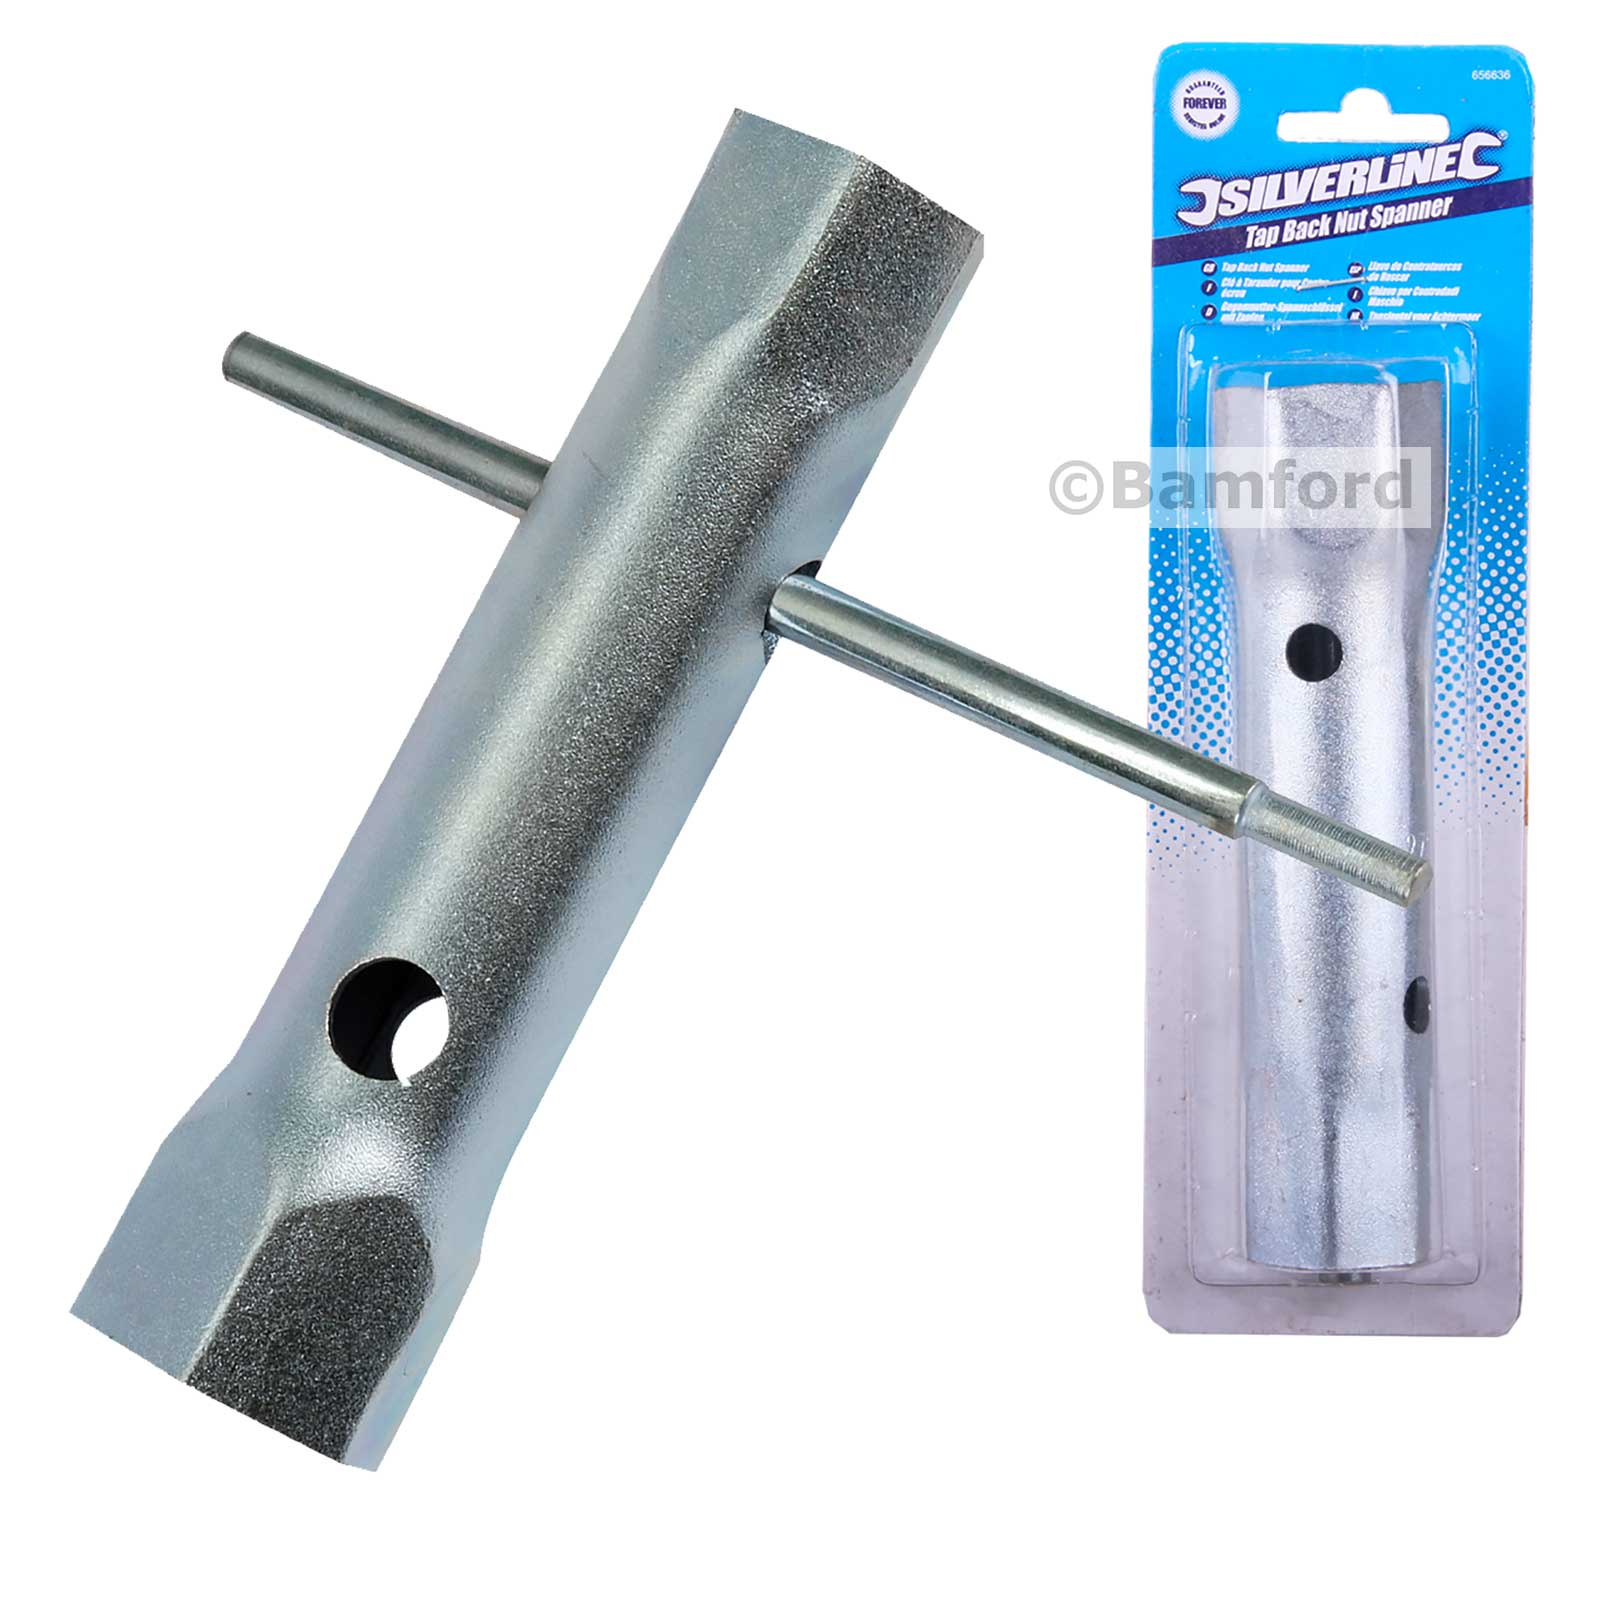 Tap Back Nut Fitting Box Spanner 27mm 32mm Bath Sink Basin Plumbers Wrench Tool 5052899501958 Ebay